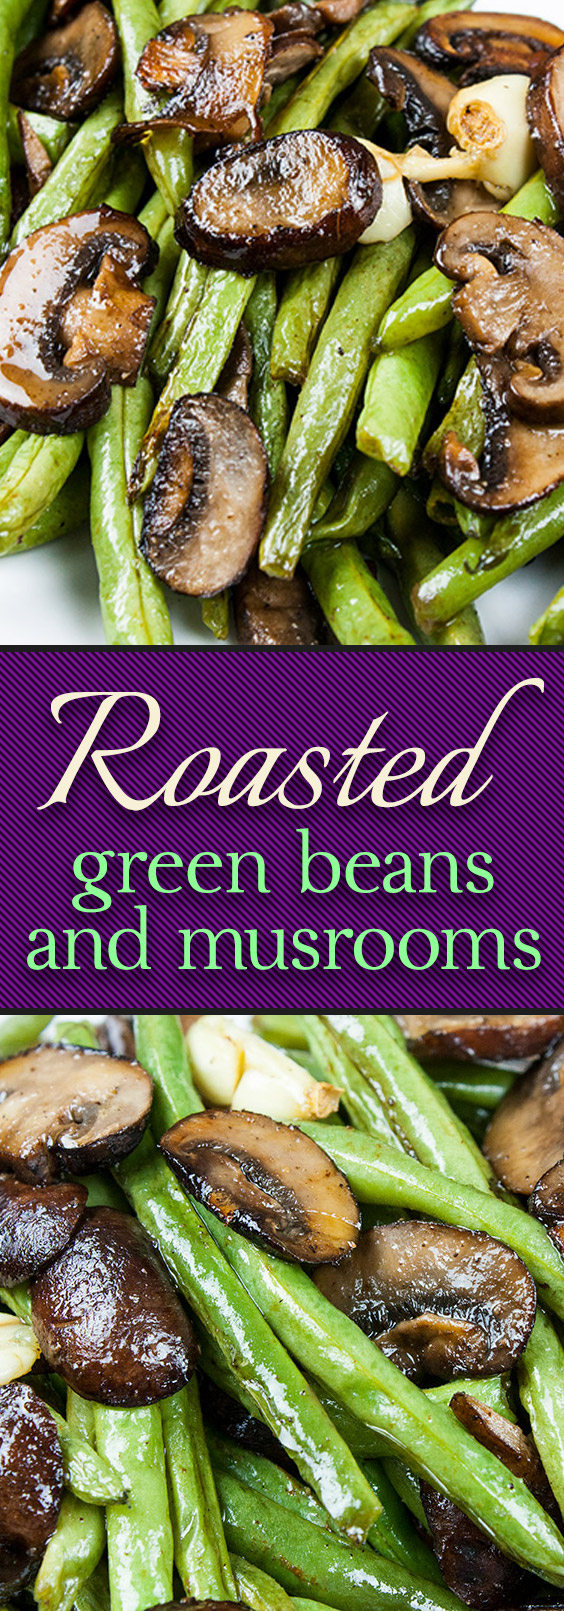 Roasted Green Beans and Mushrooms - Fresh green beans and crimini mushrooms tossed with garlic-infusedoil and roasted for a tasty twist.